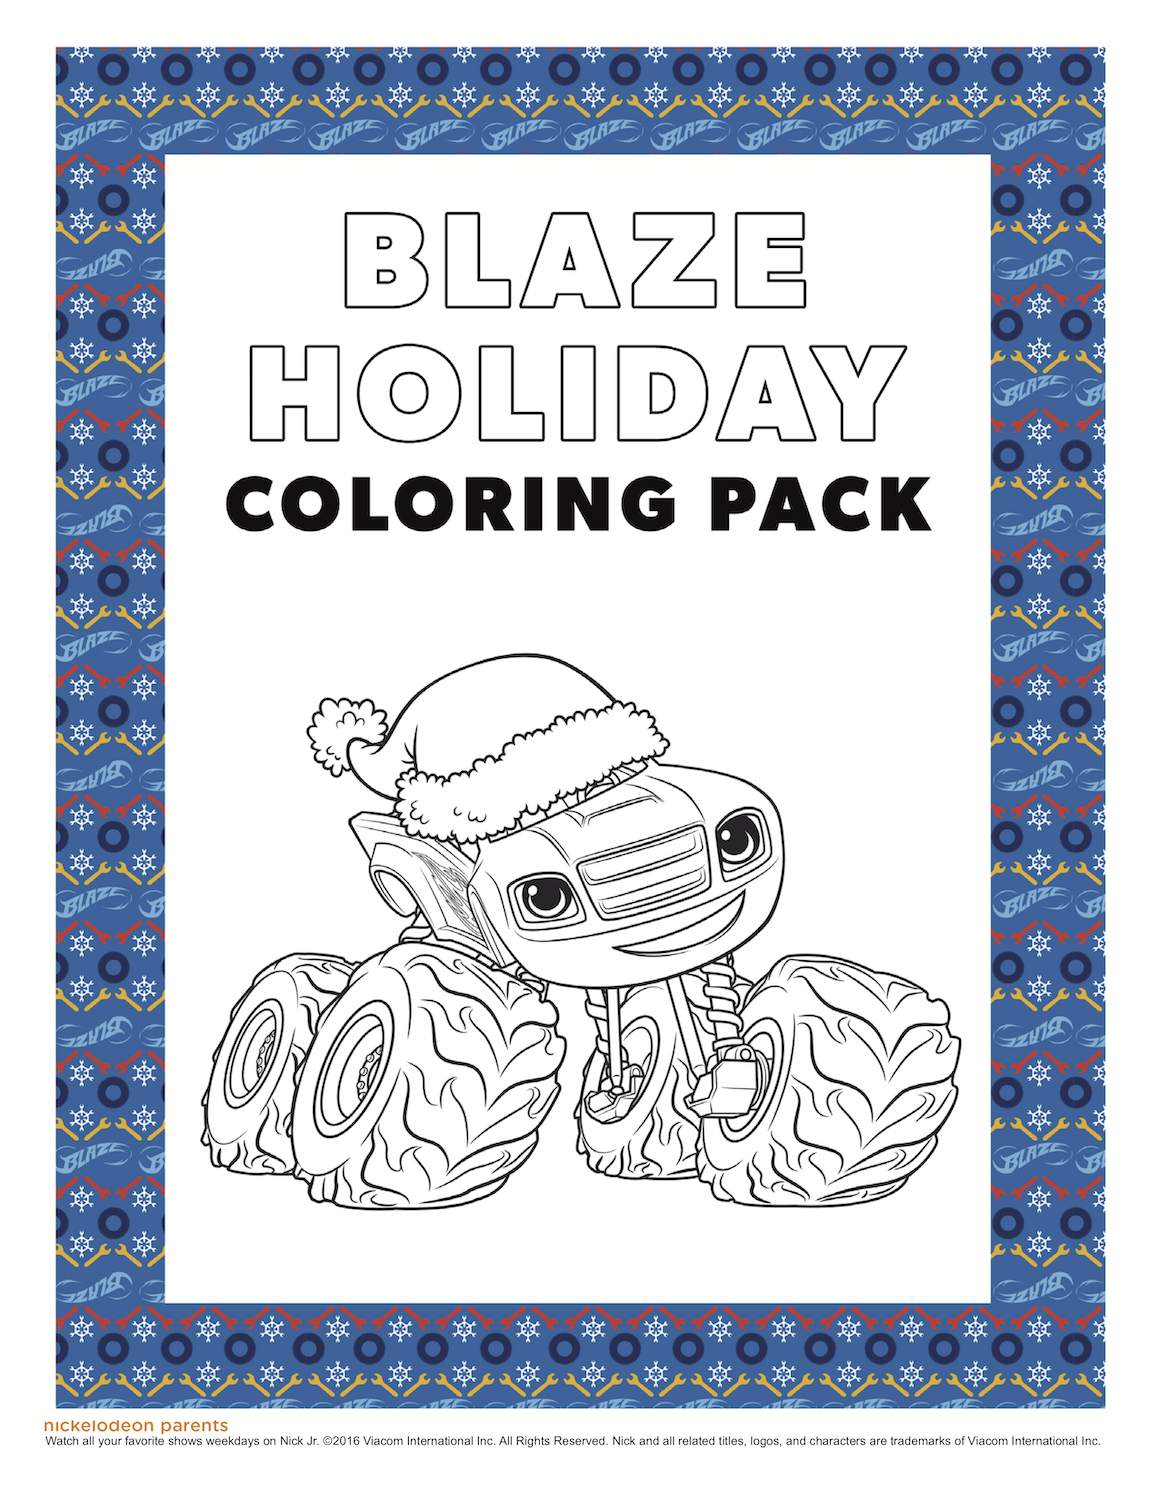 Free Blaze Holiday Coloring Pack Christmas Printable Snowman Coloring Pages Holiday Coloring Book Christmas Coloring Books